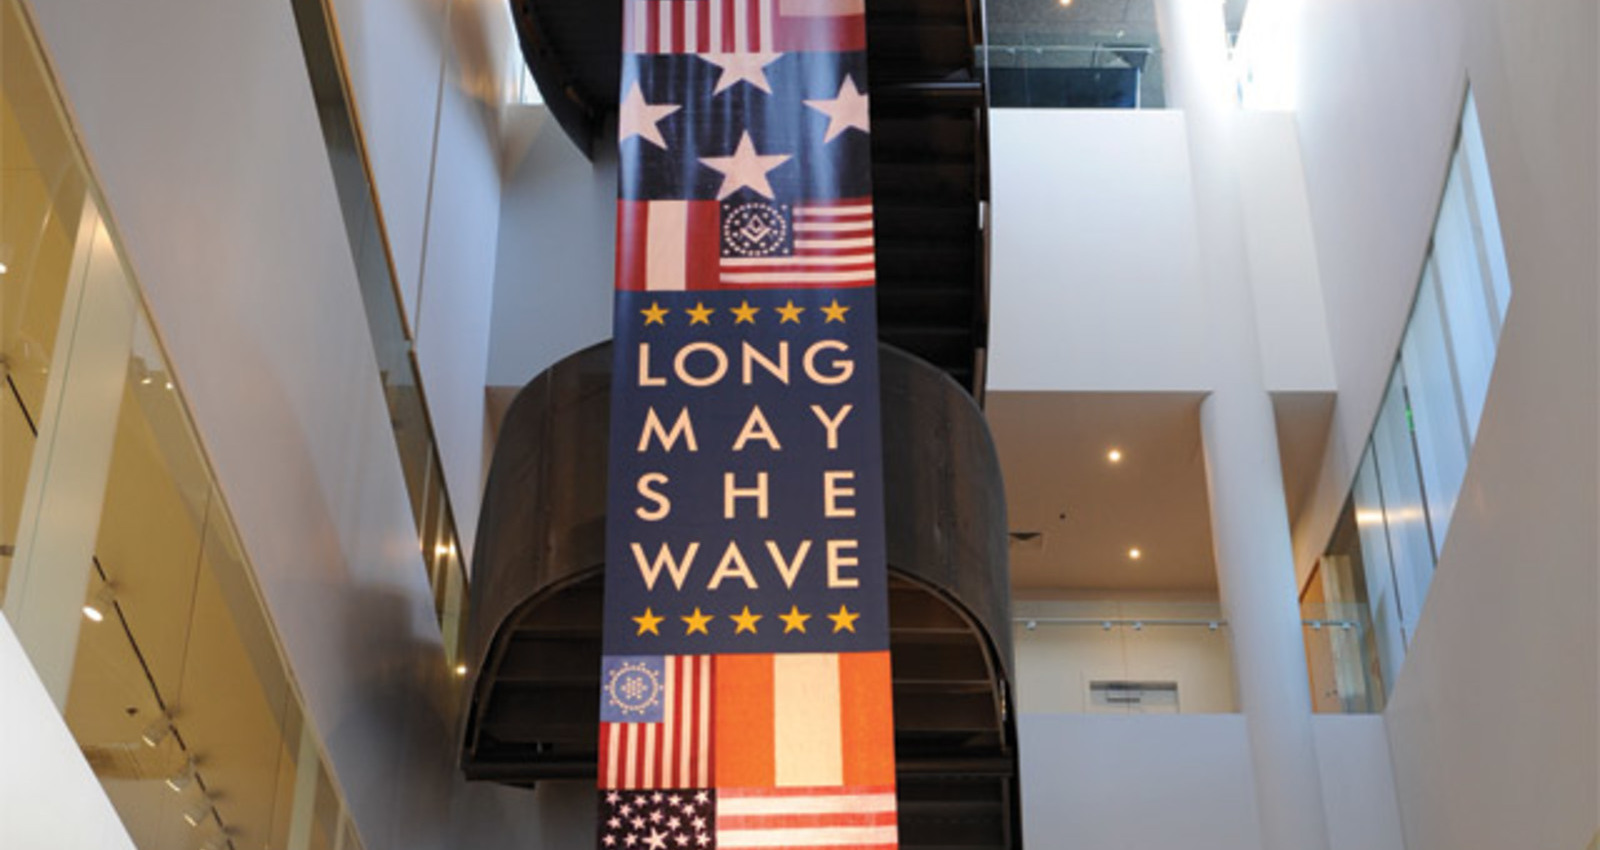 Long May She Wave